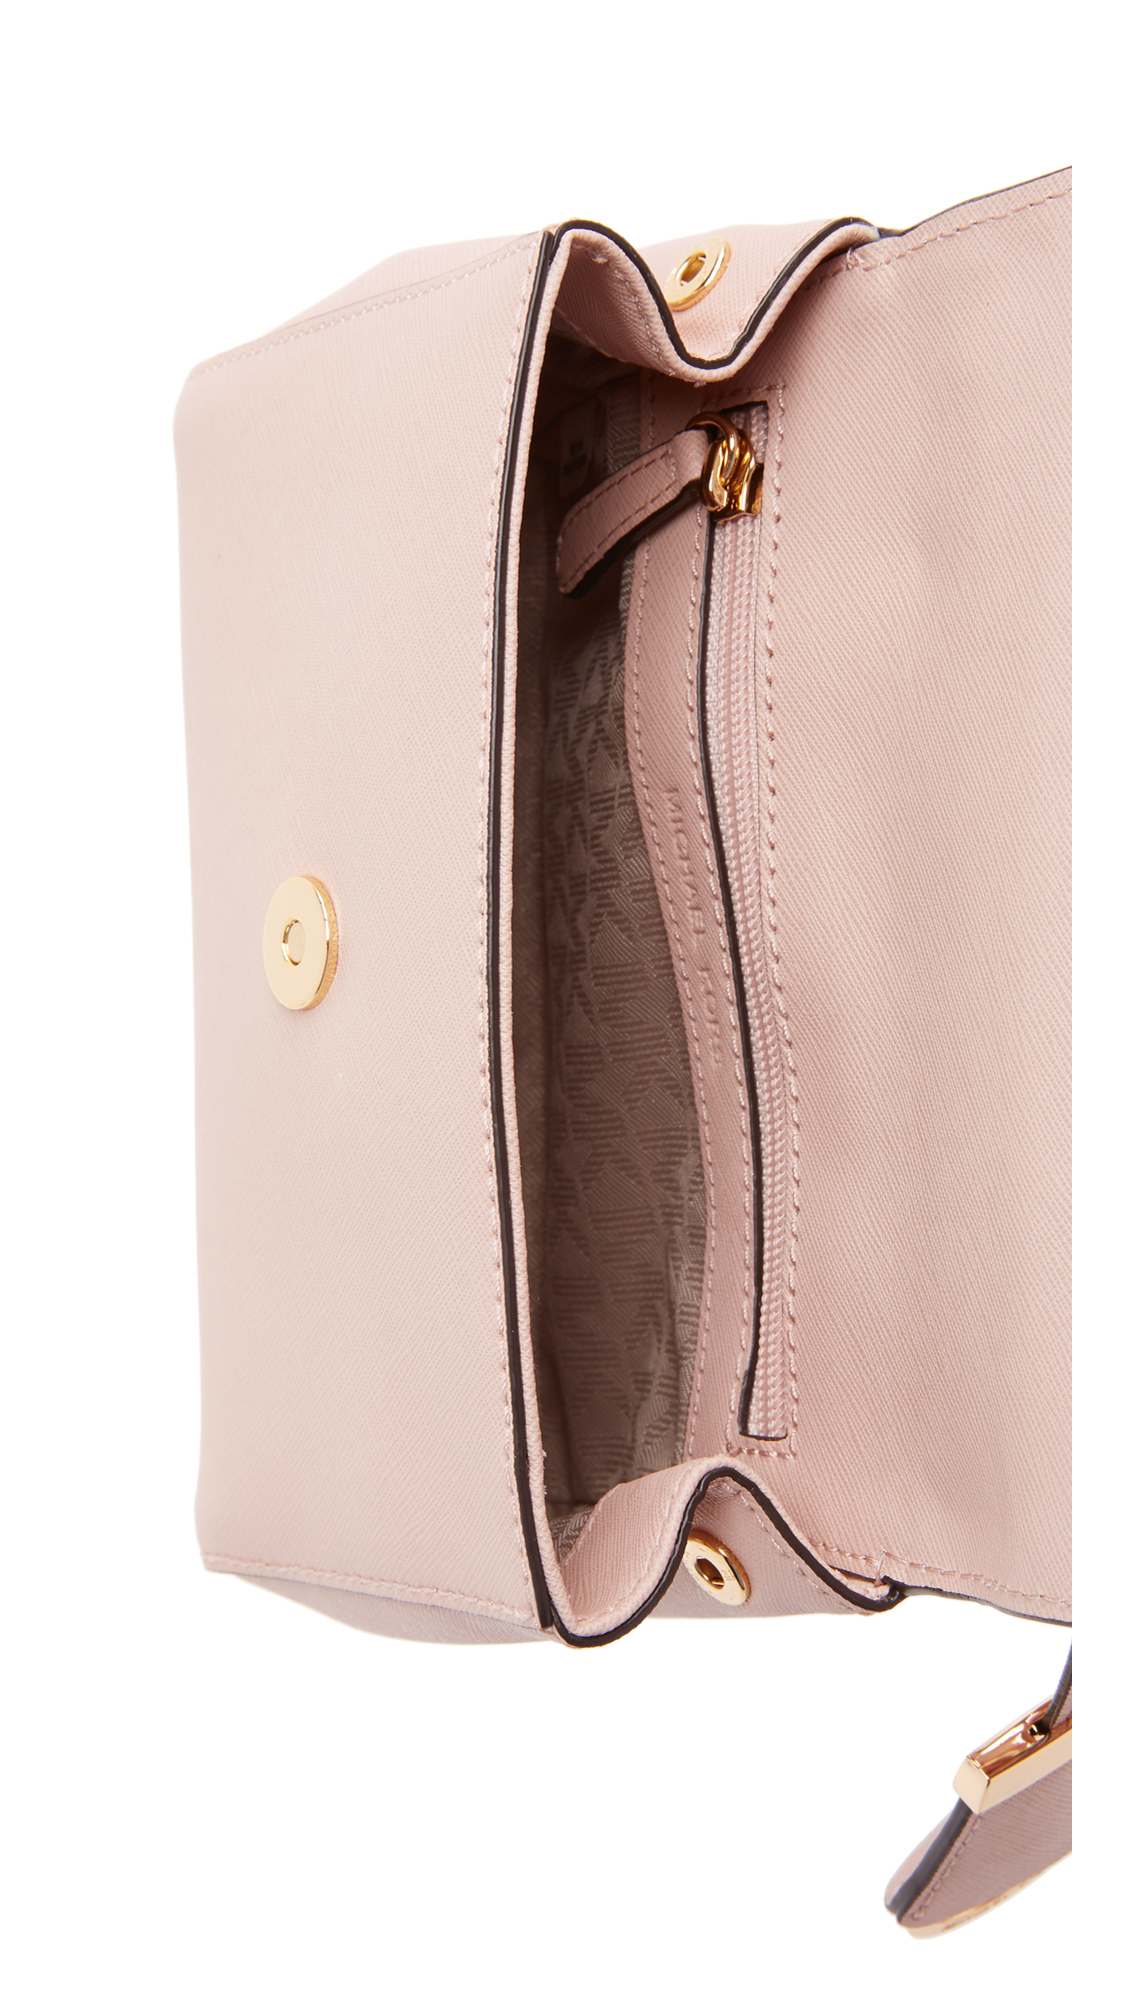 6e2f8234a8a39 MICHAEL Michael Kors Ava Extra Small Cross Body Bag - Ballet in Pink ...